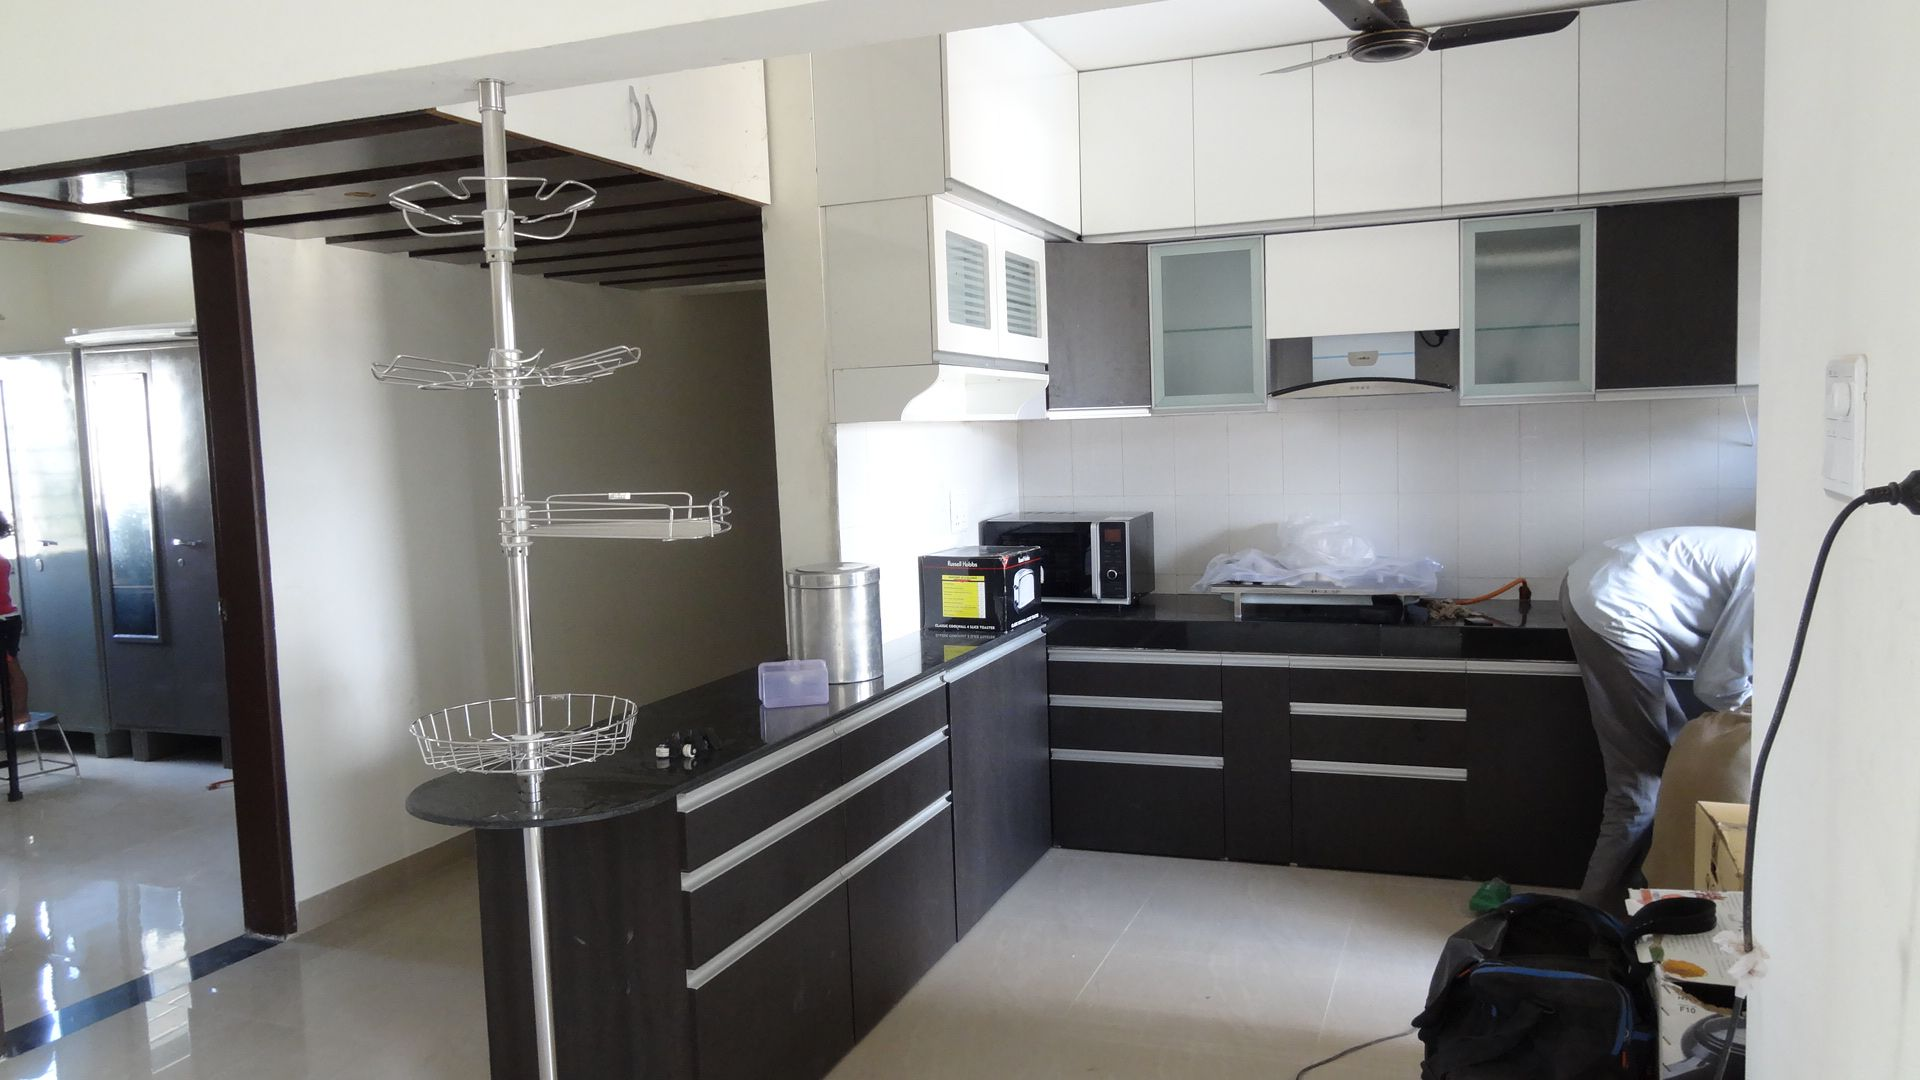 Buy Kitchen Gas Hobs From Top Brands In Lucknow At Affordable Price Call Lucknow Kitchens For L Best Kitchen Layout Interior Decorating Kitchen Kitchen Layout